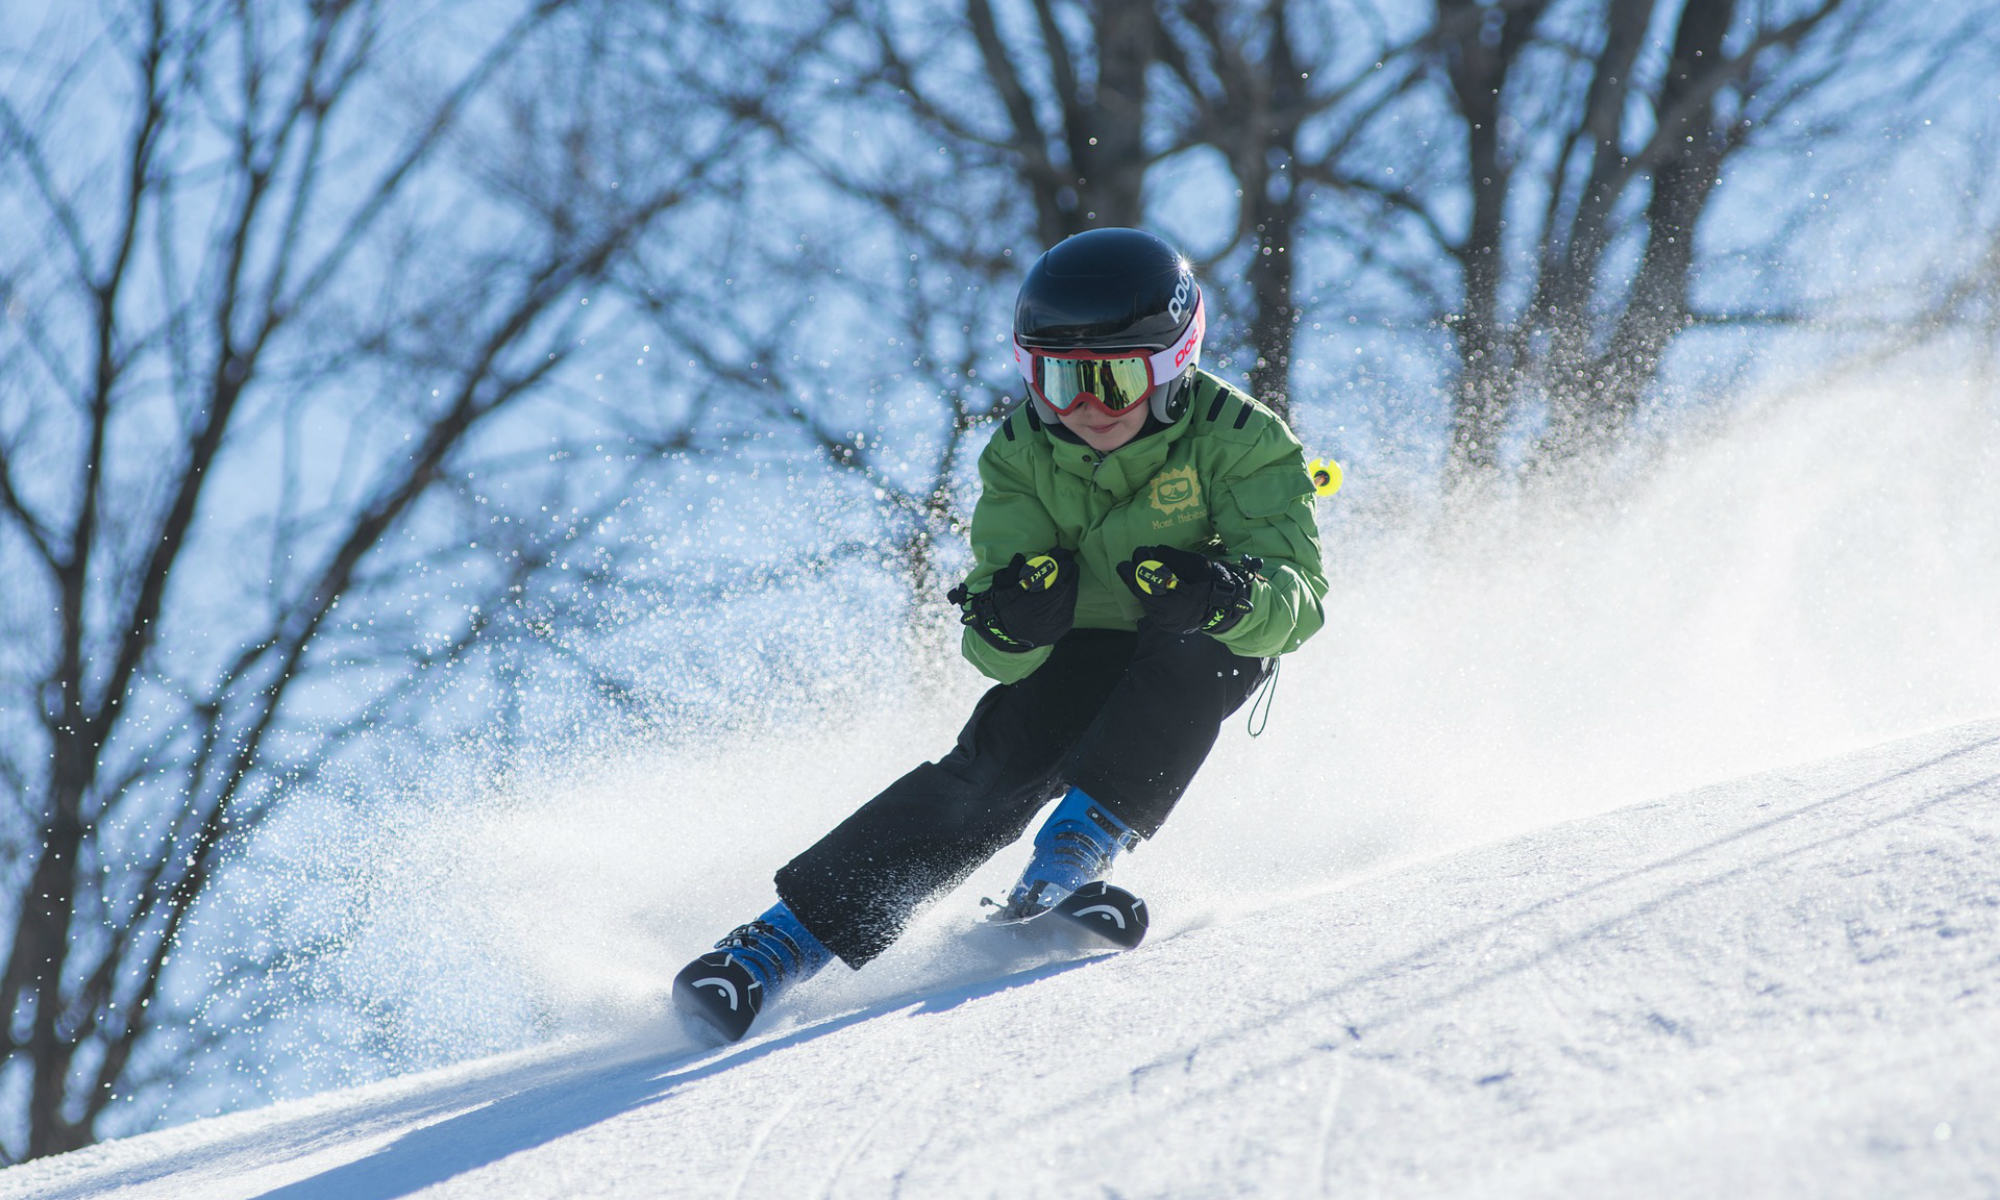 A young skier carving.